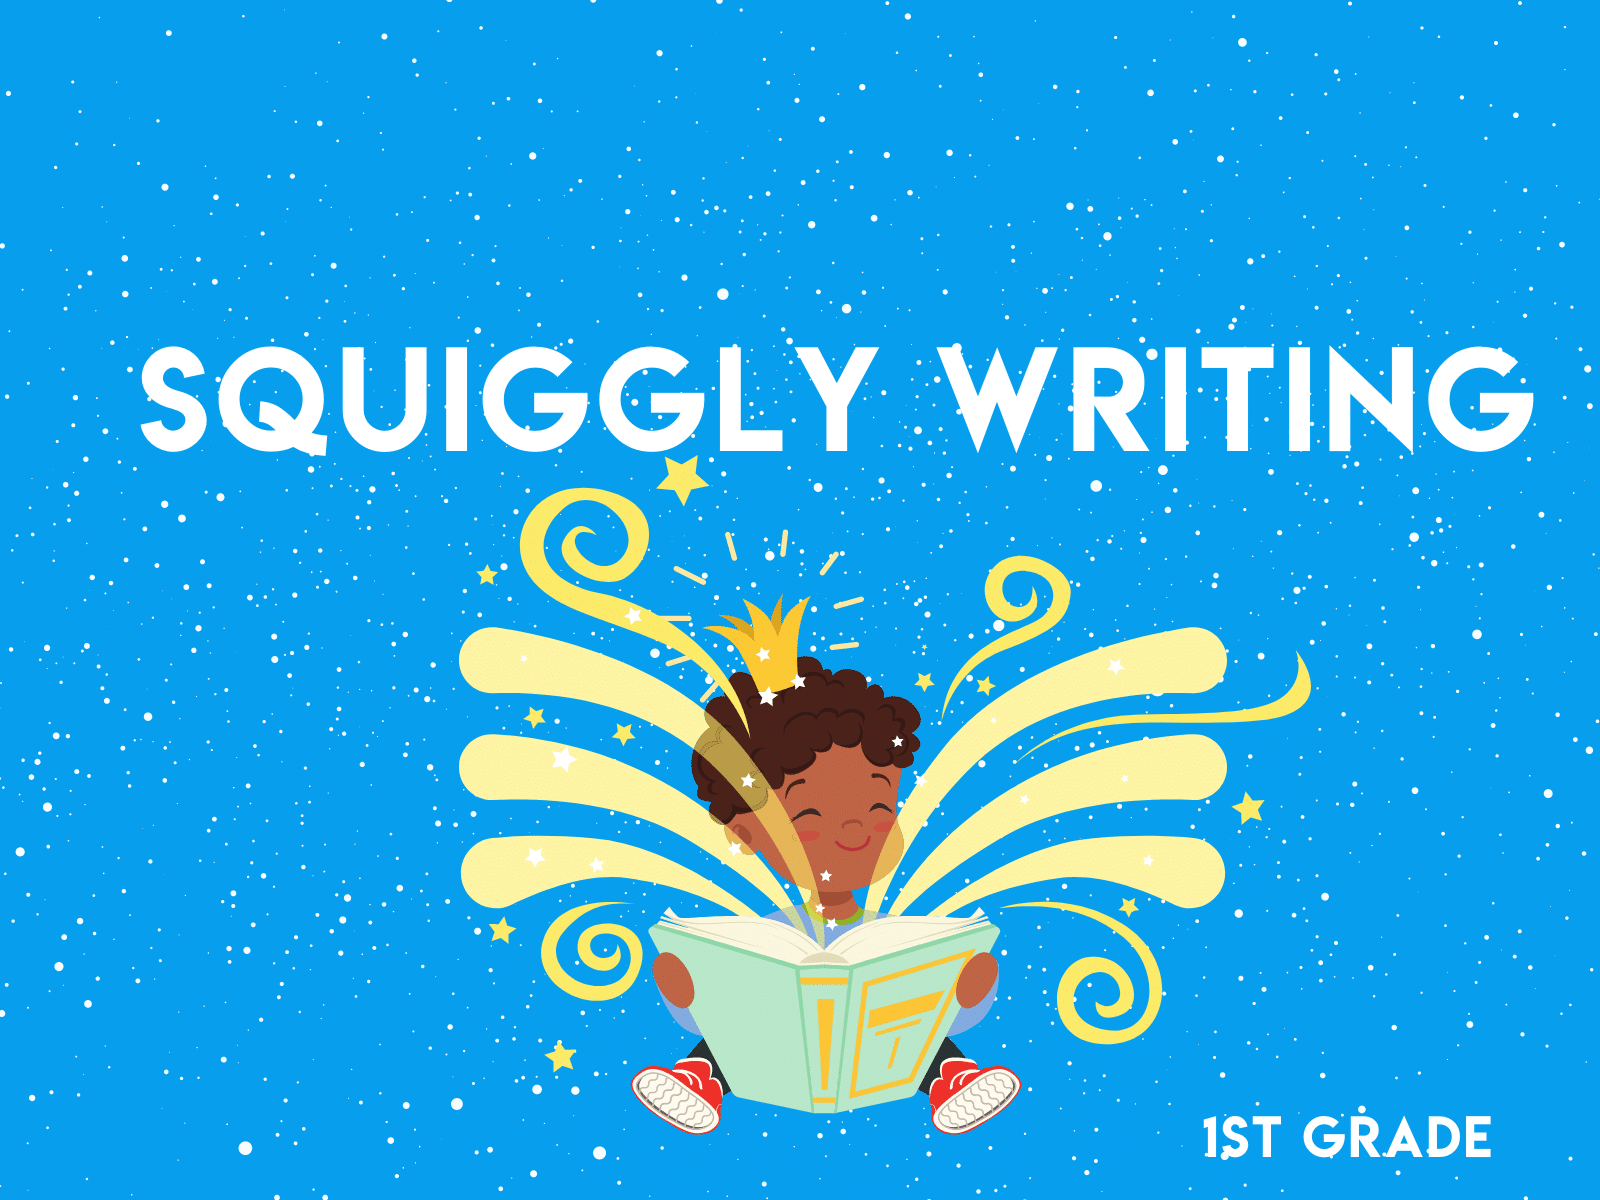 Squiggly writing activity for first graders to work on creativity and sentence writing.